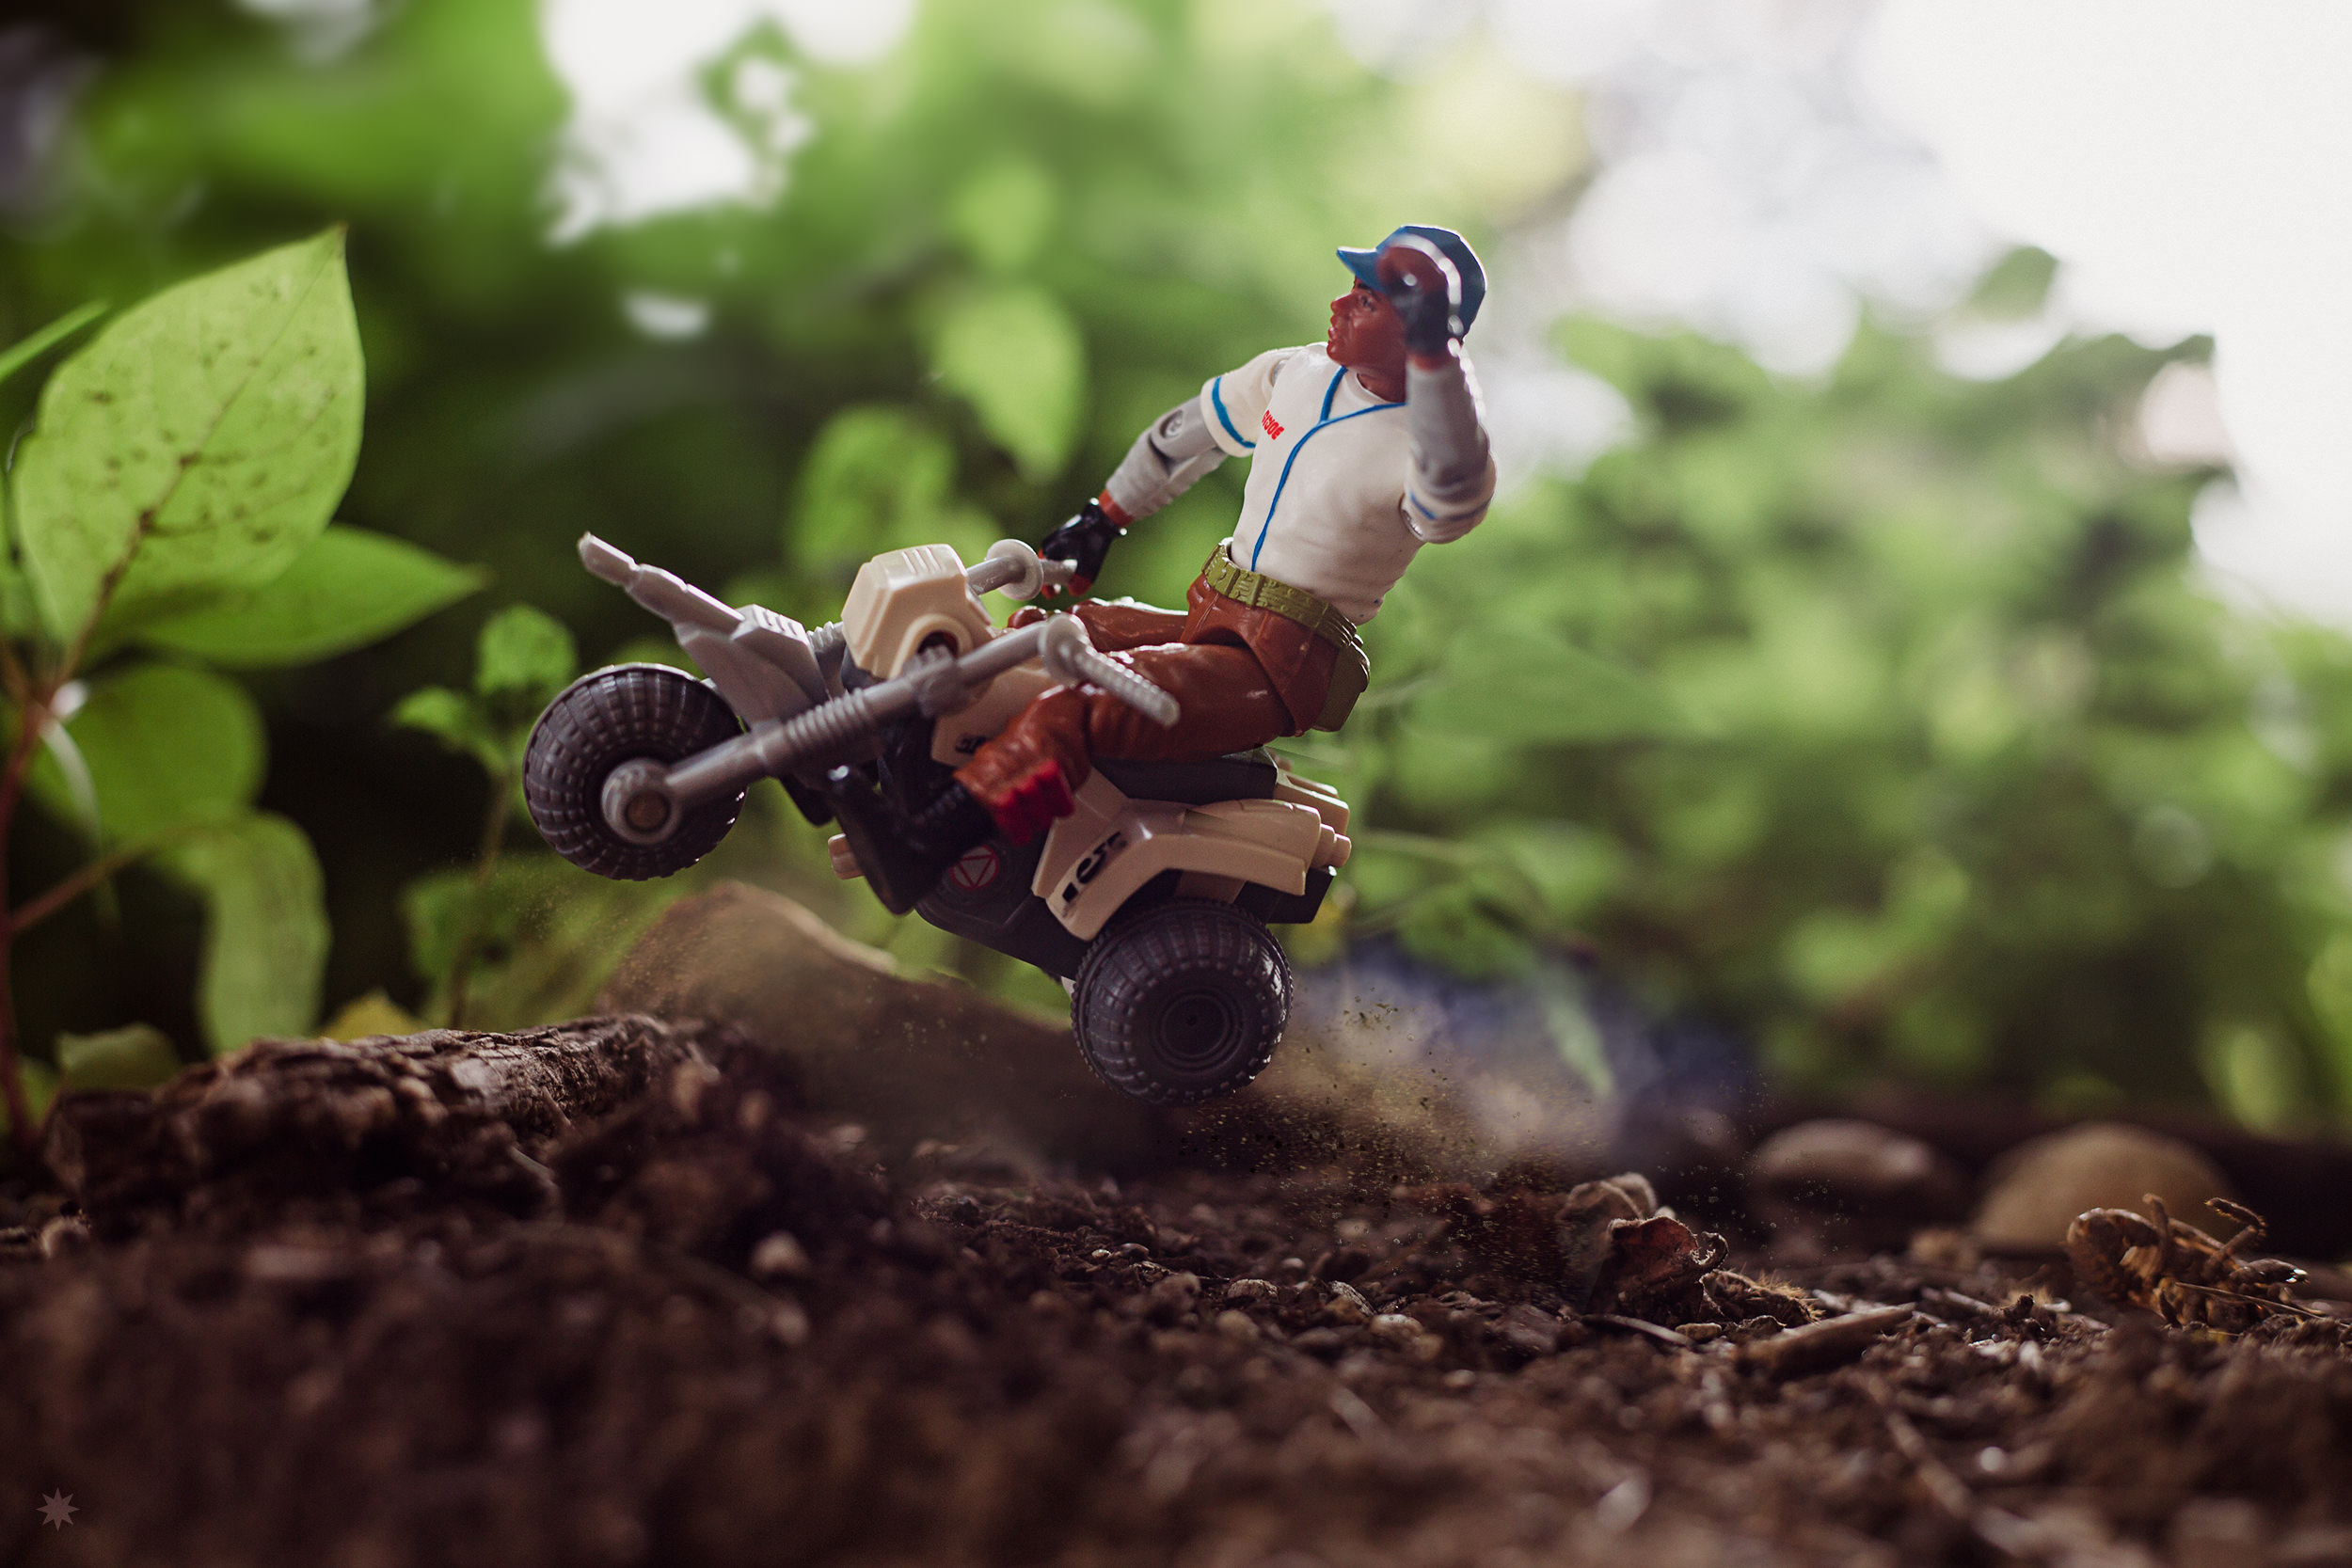 gijoe-atv-hardball-action-figure-toy-photo-paul-panfalone.jpg